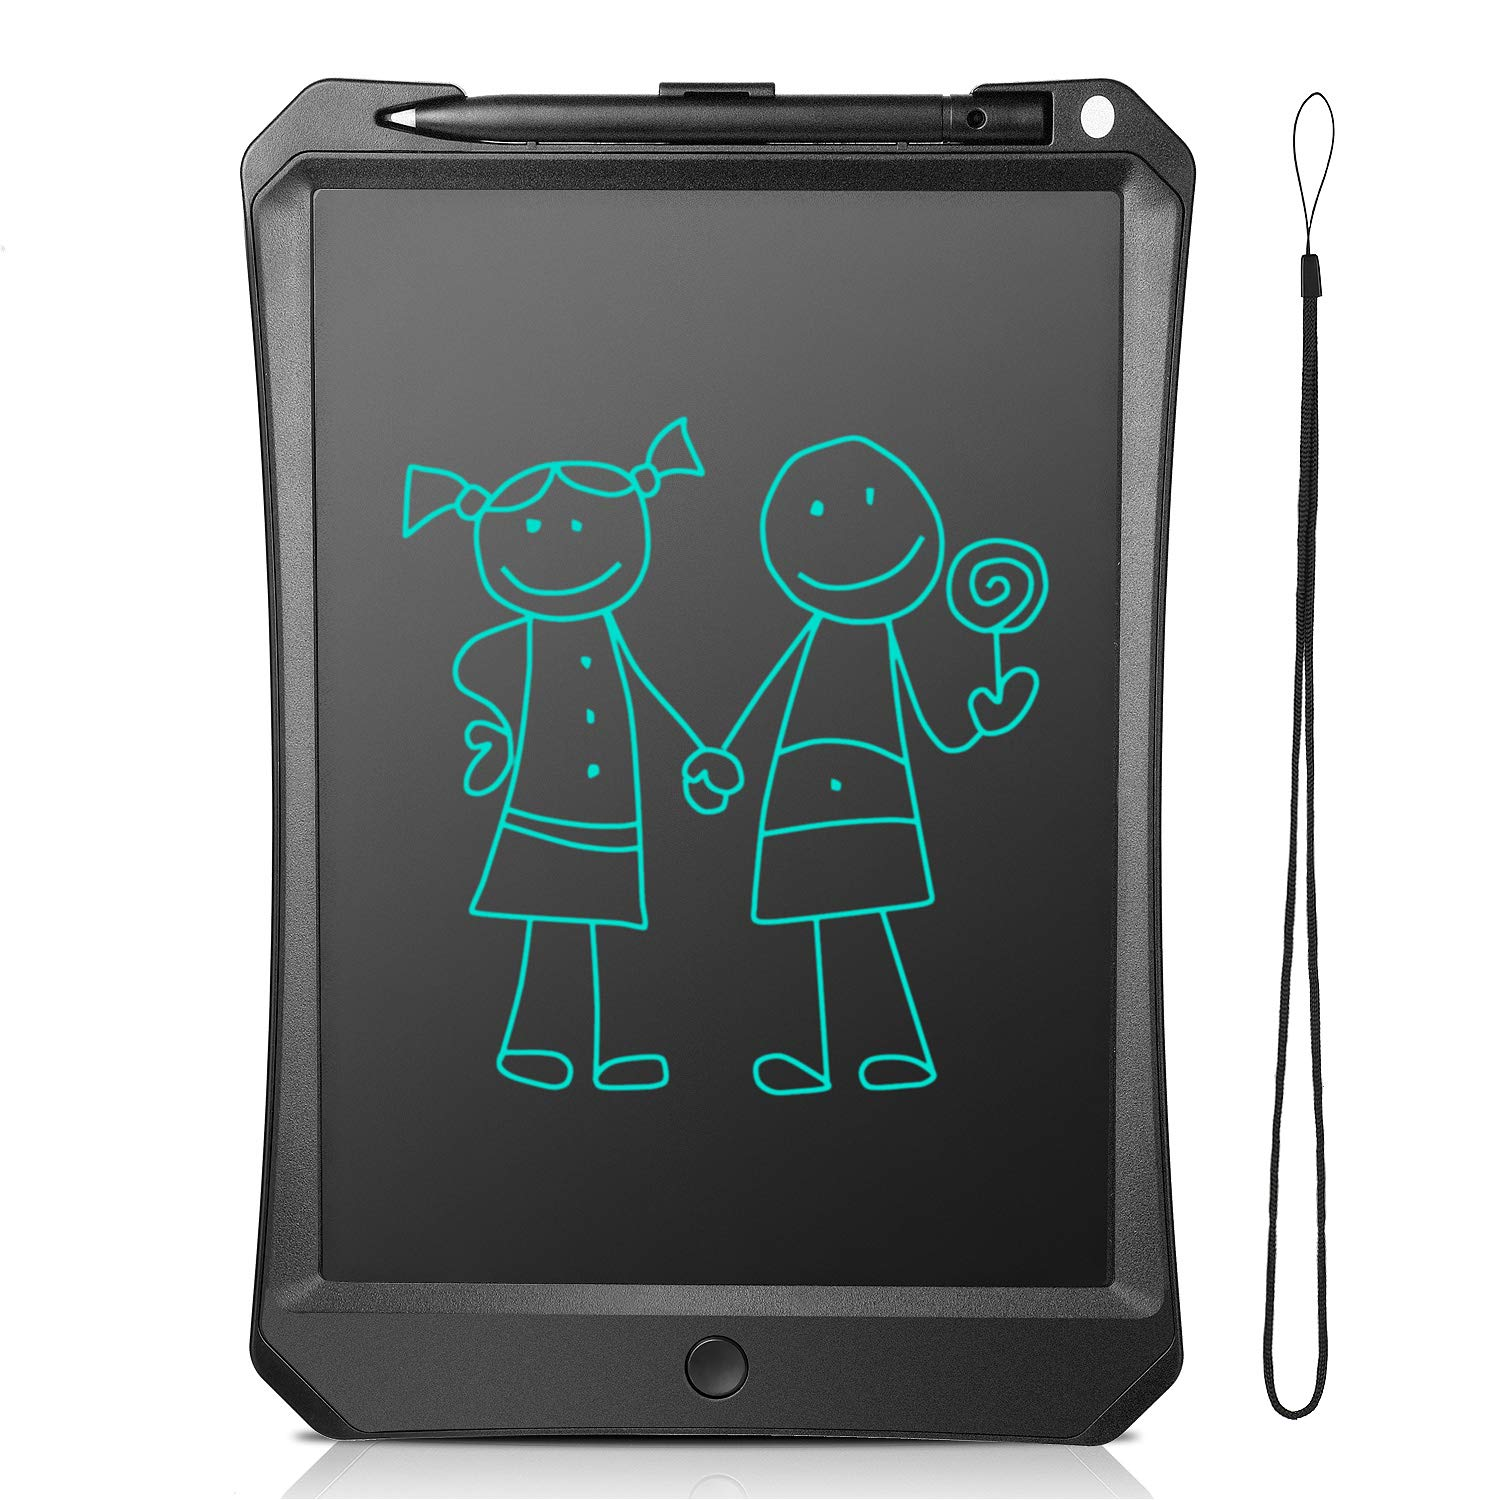 """LCD Writing Tablet 10"""", FlyHi New Gen Electronic Writing & Drawing Doodle Board, Handwriting Paper Drawing Tablet, Kitchen Memo Notice Fridge Board, Daily Planner, Gift for Kids and Adults (Black)"""